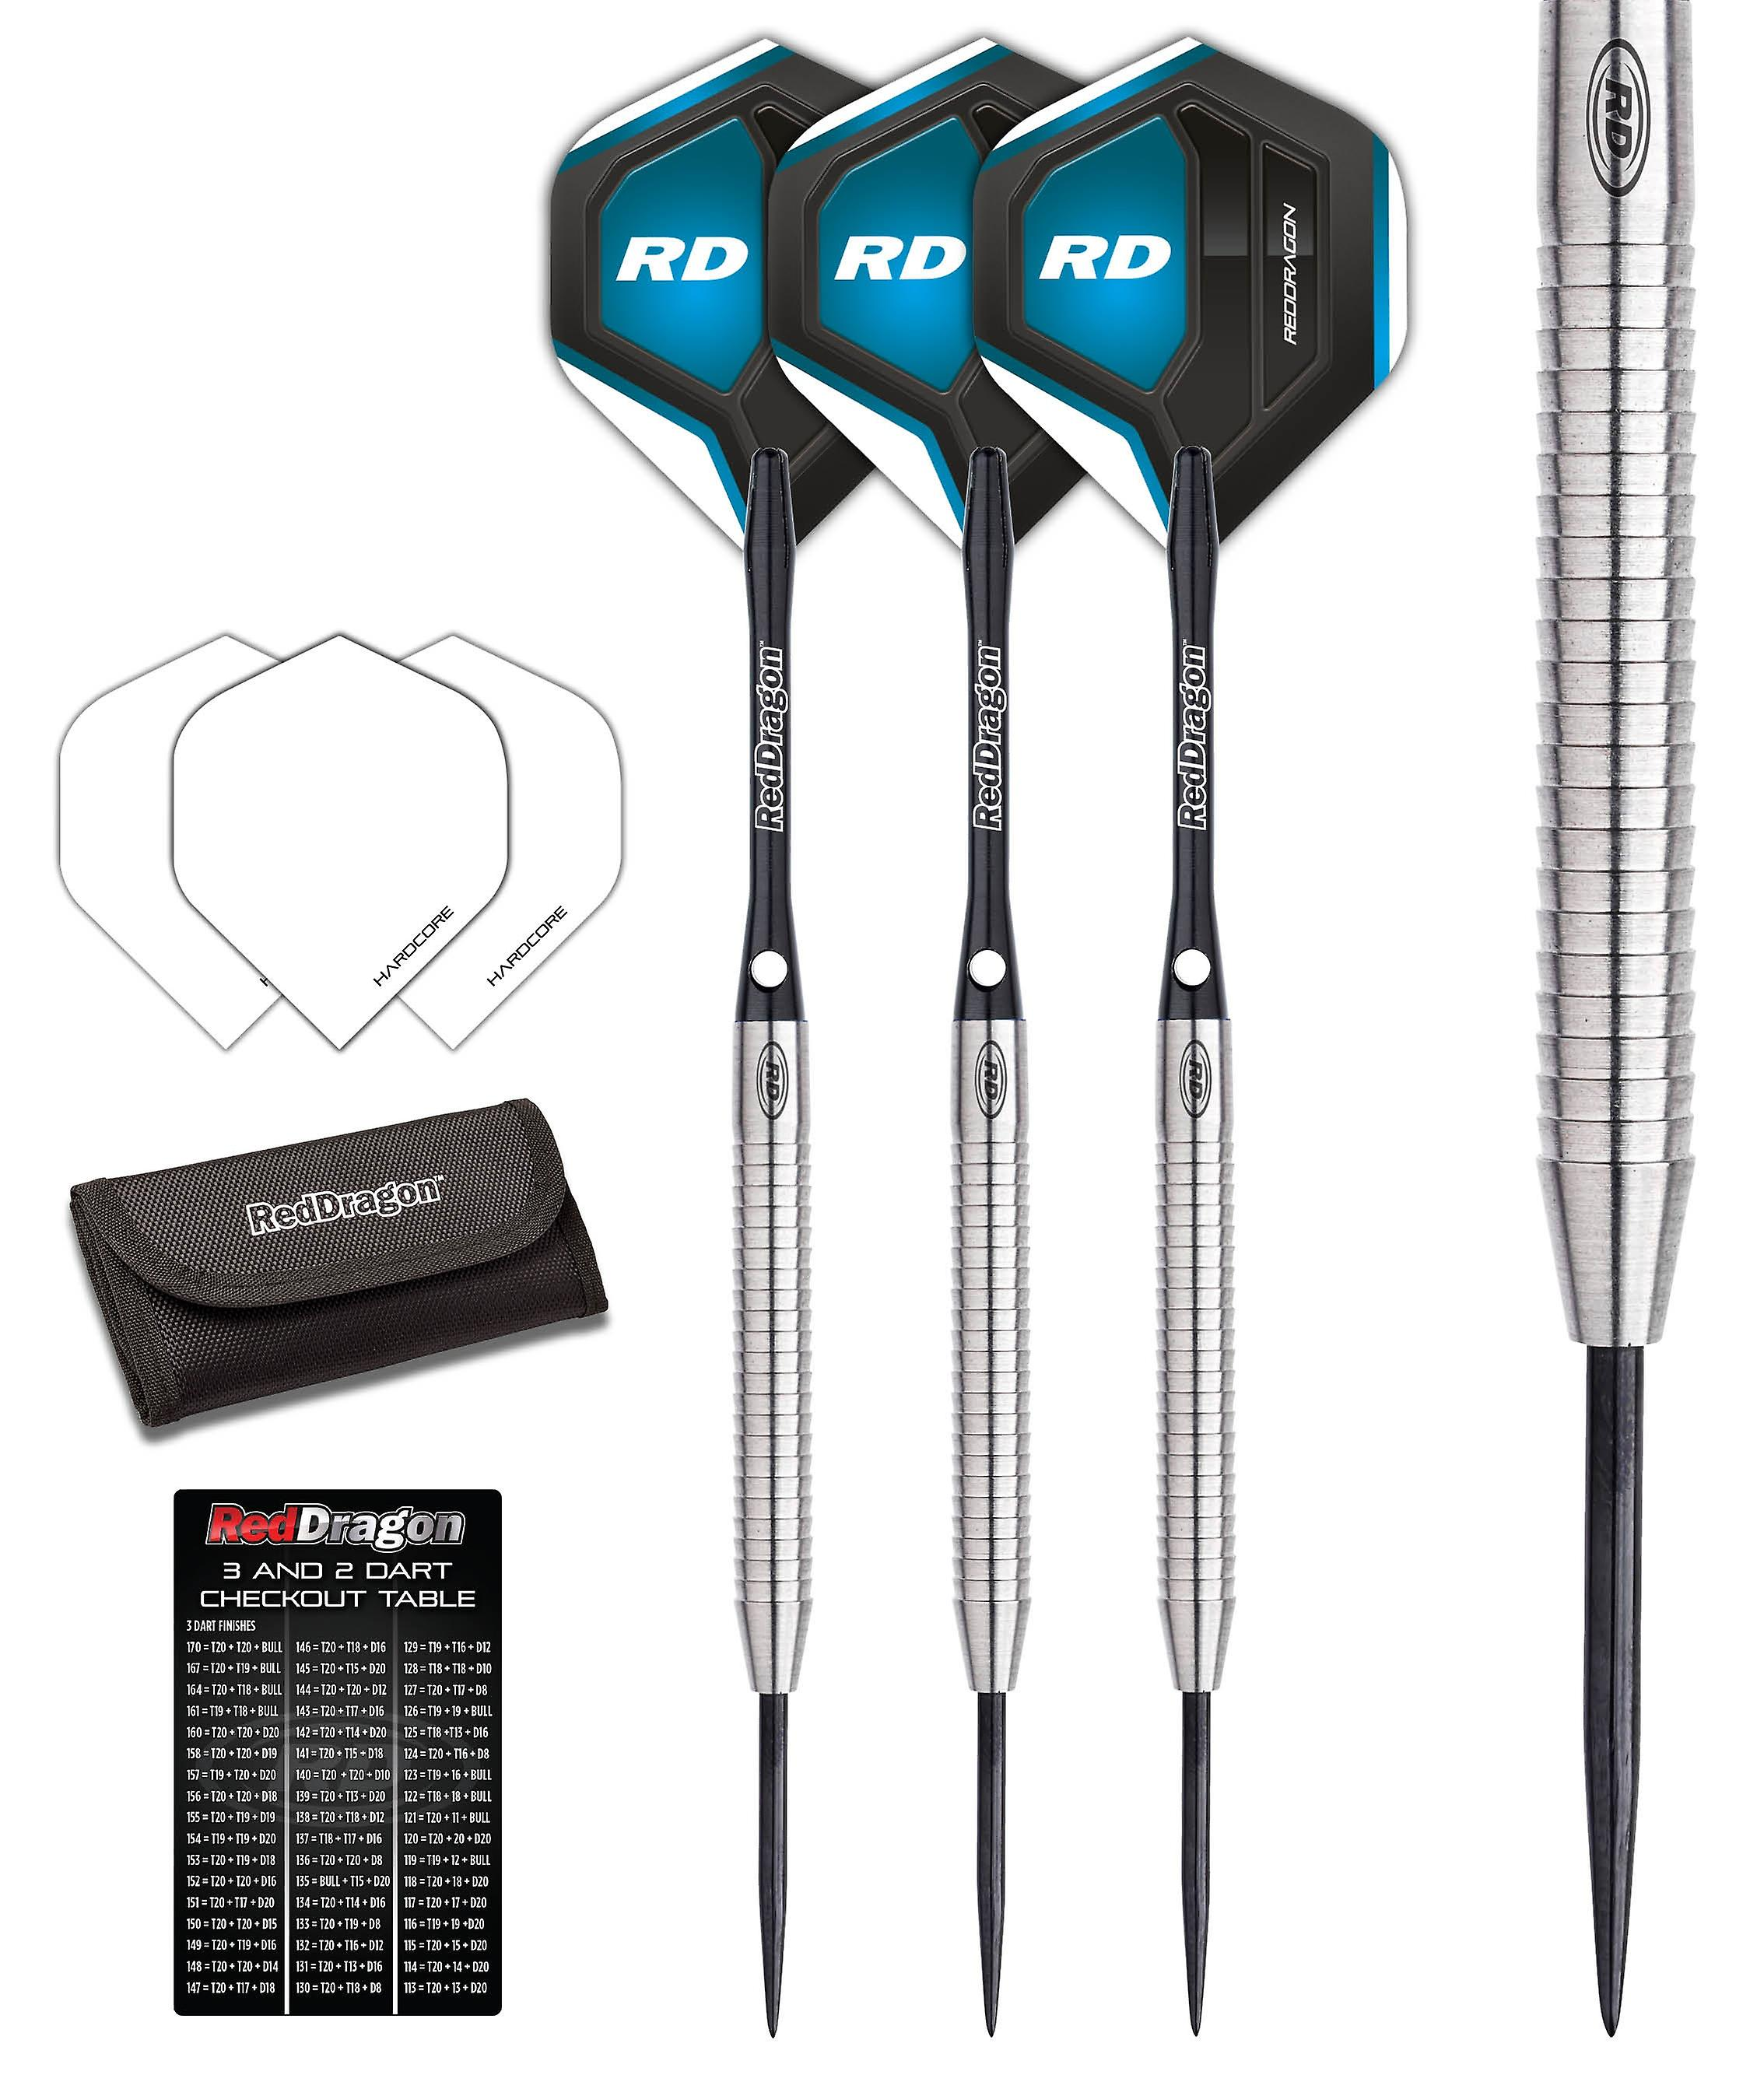 Red Dragon Razor Edge 1 Tungsten Steel Darts with Flights, Shafts & Wallet & Red Dragon Checkout Card